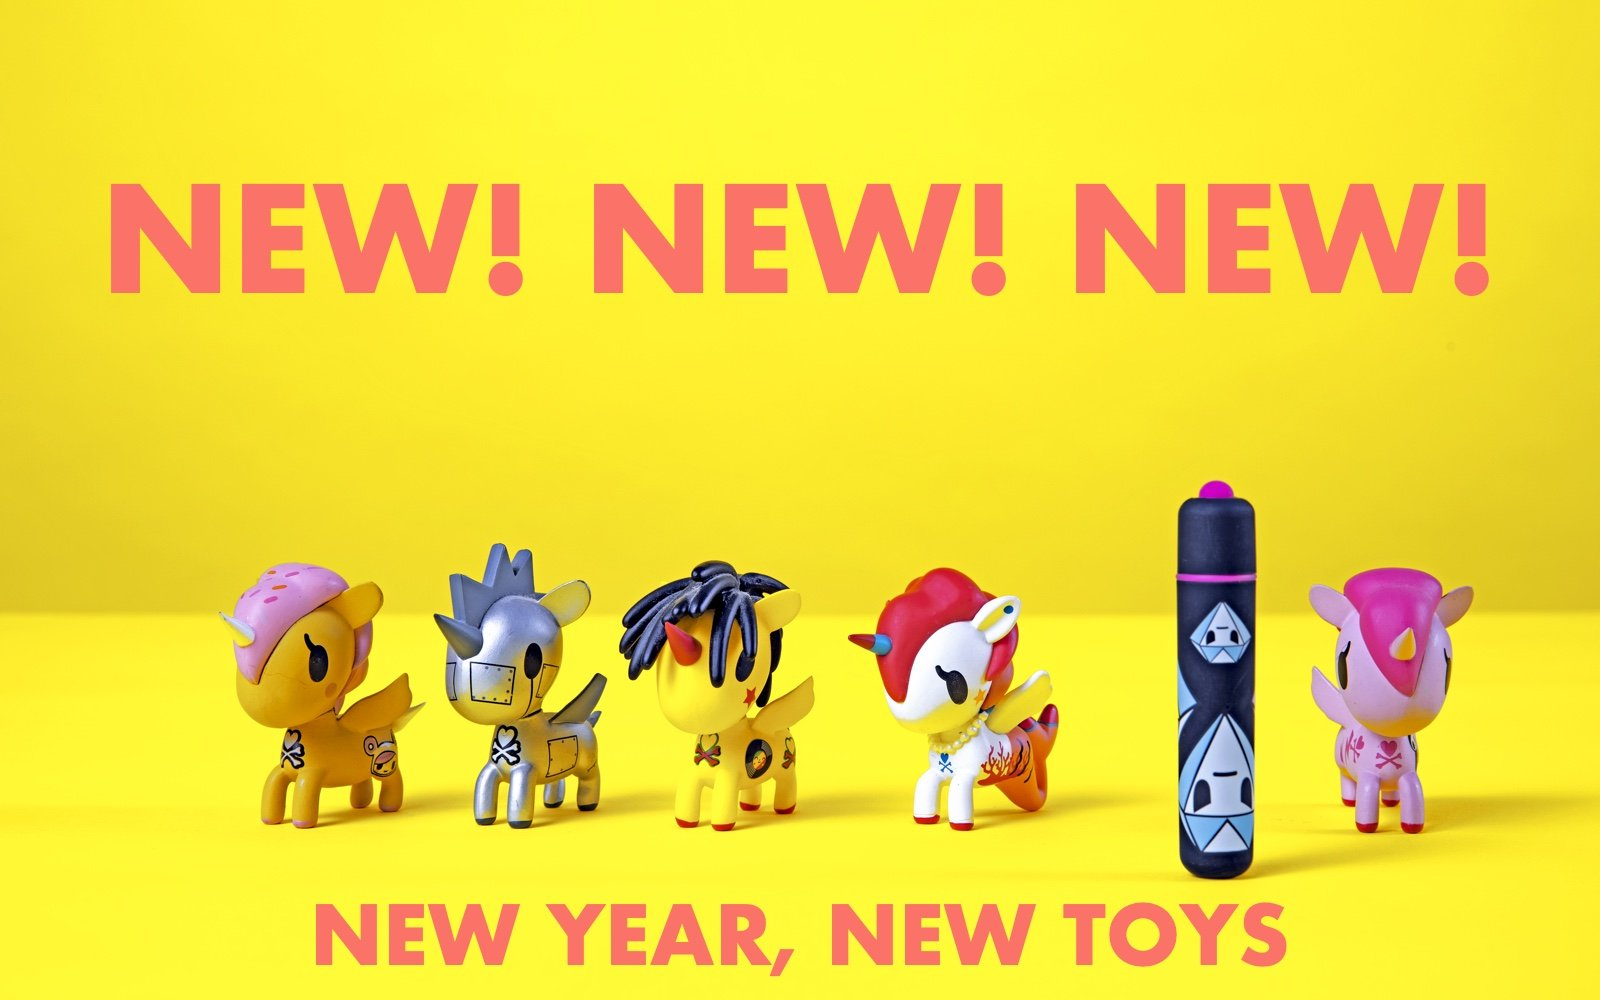 New Year, New Toys - Discover New Toys - Rolik®